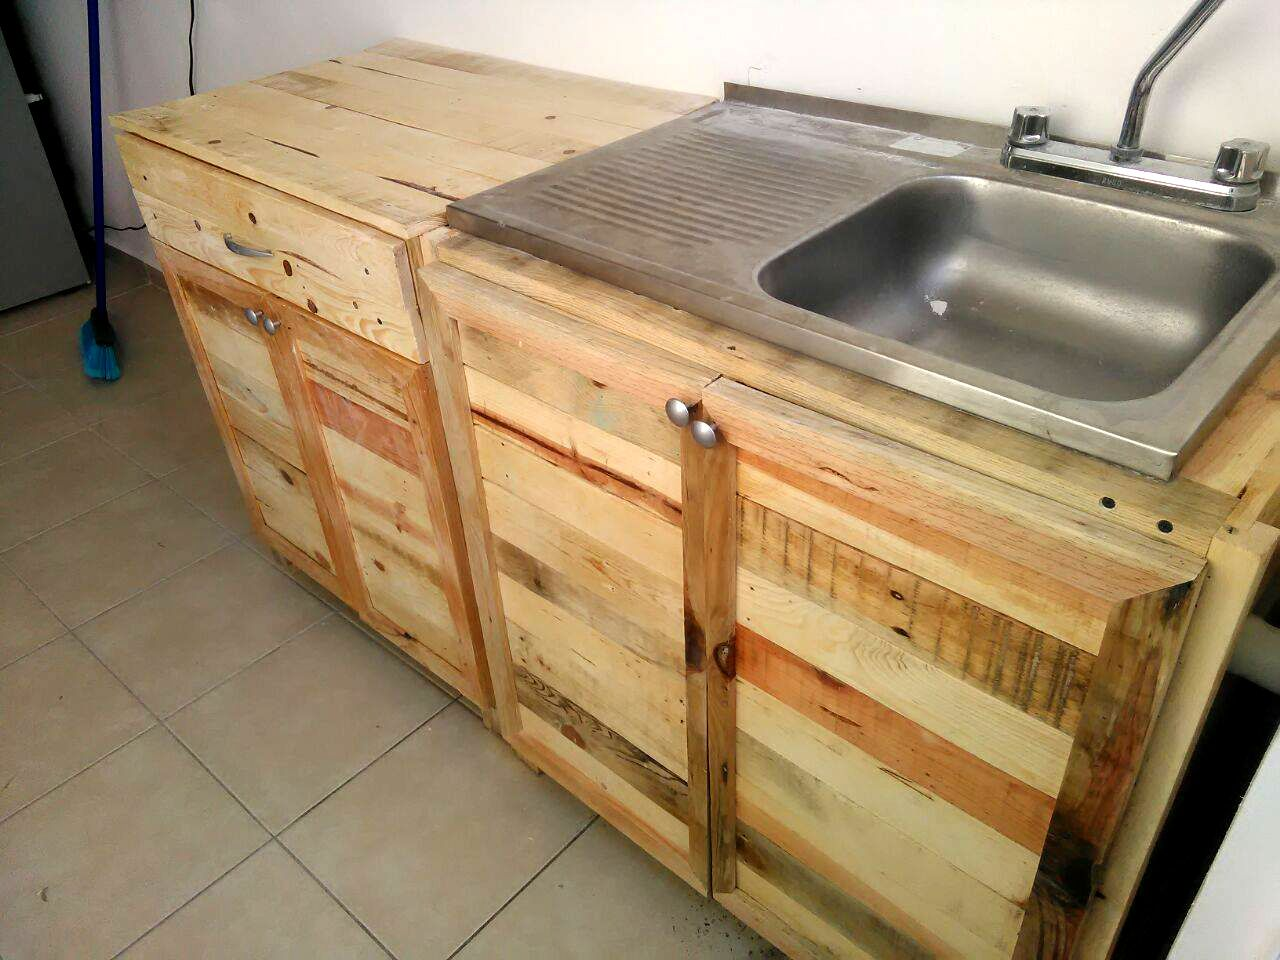 pallet kitchen cabinets kitchen sink cabinets Kitchen wholly made from Recycled Pallets